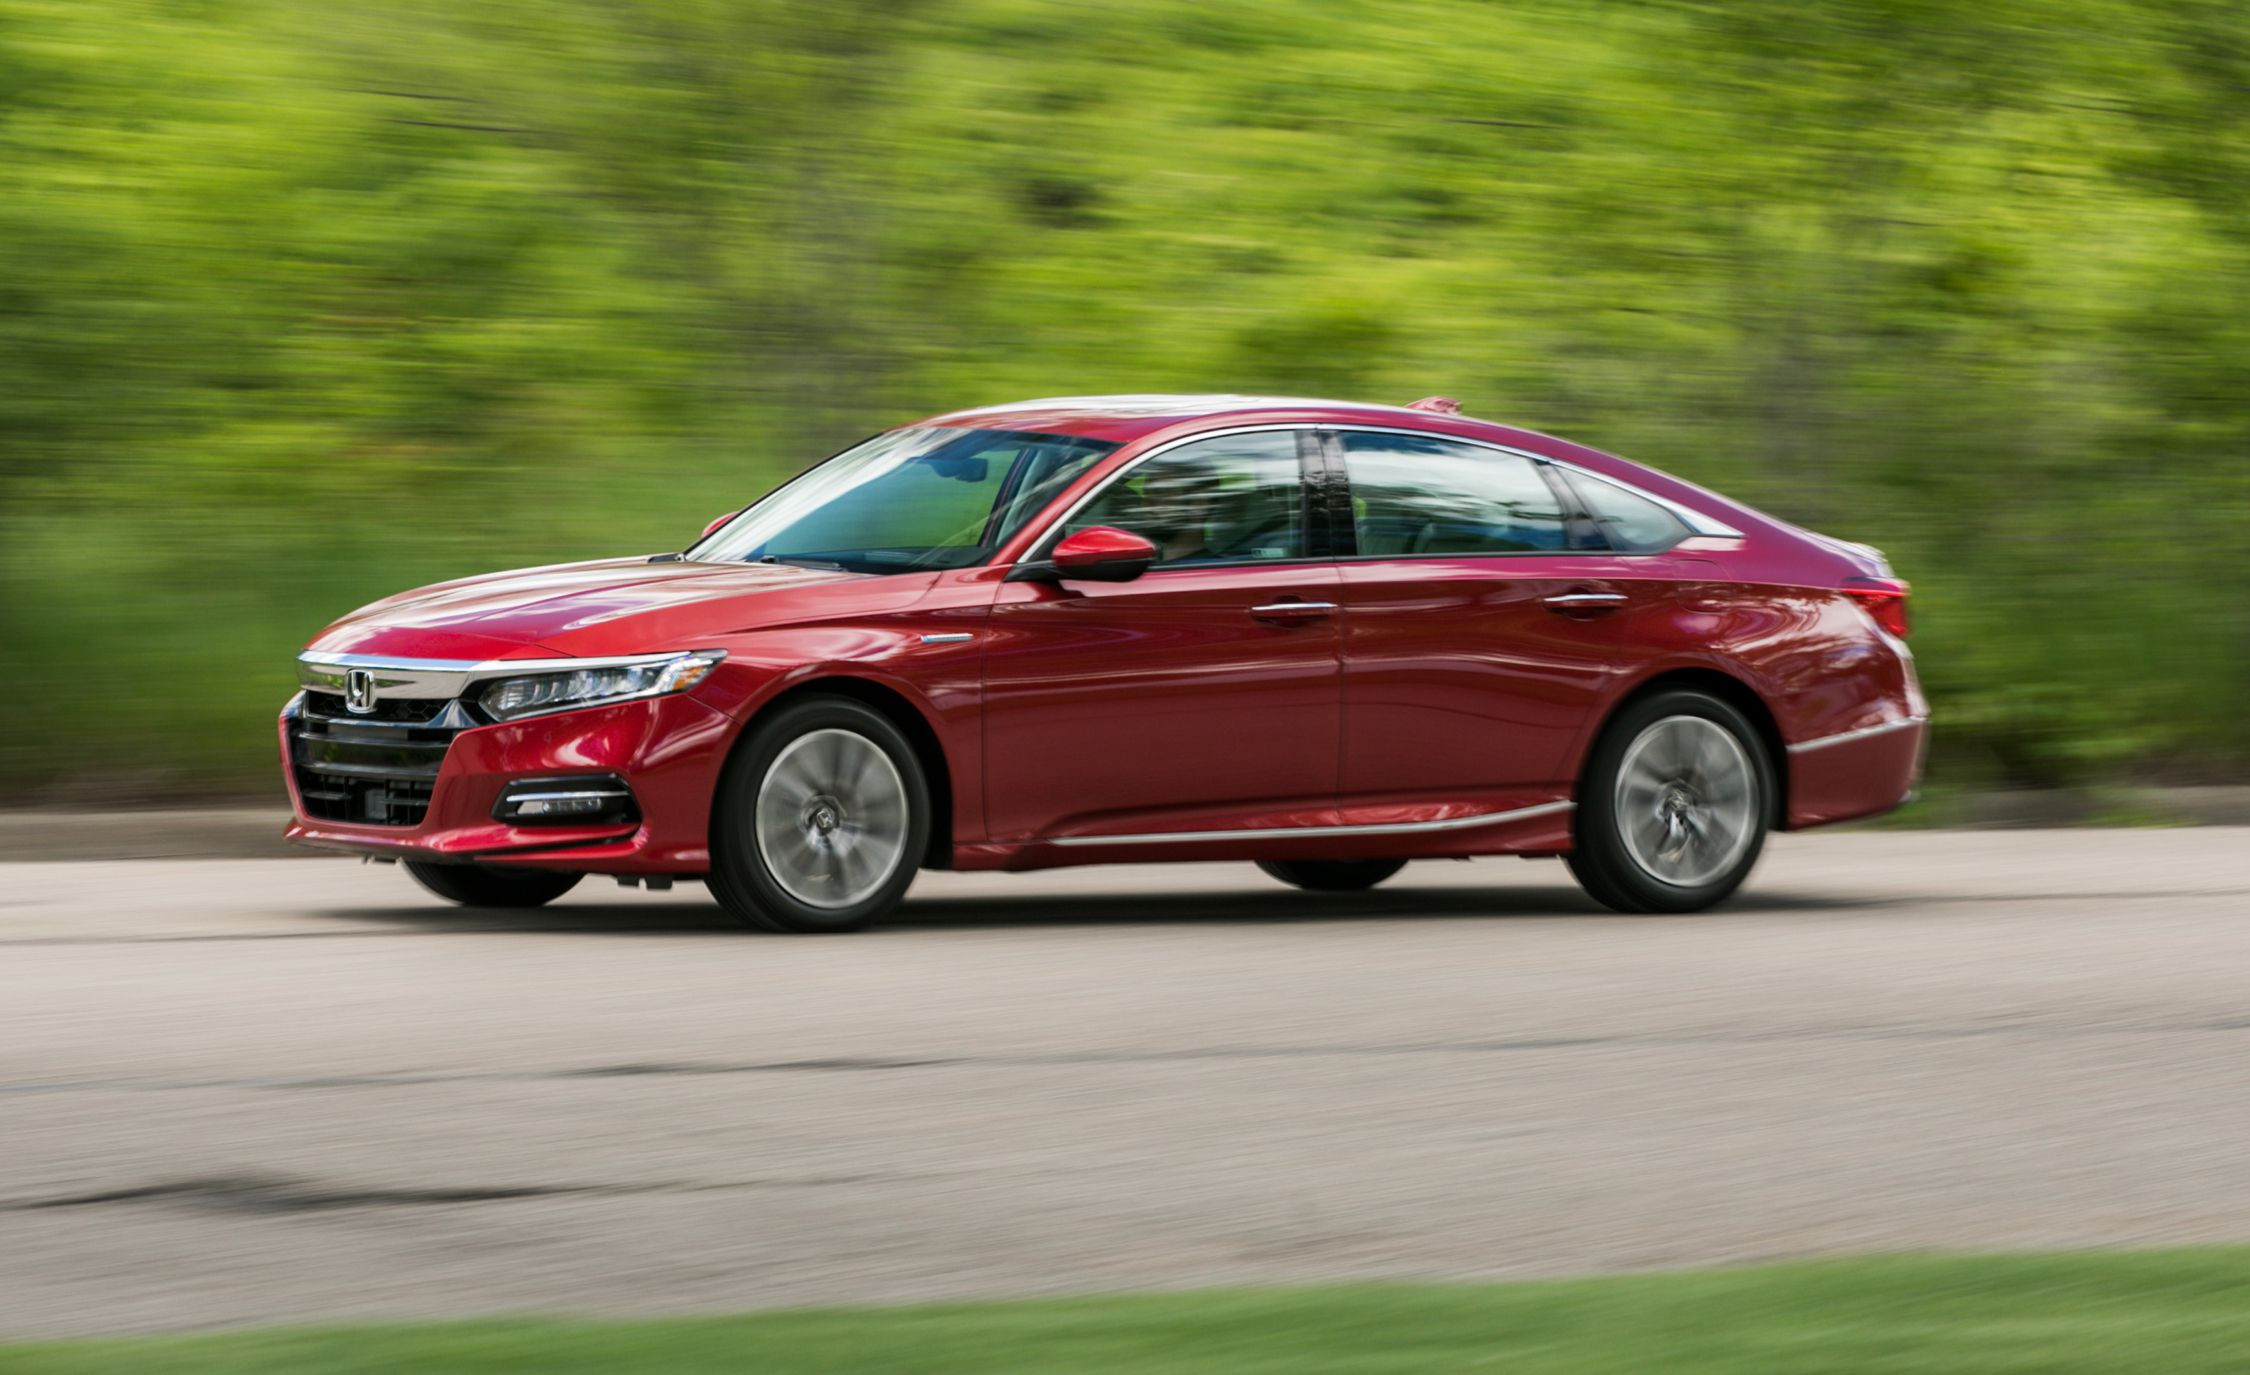 Honda Accord Reviews Honda Accord Price s and Specs